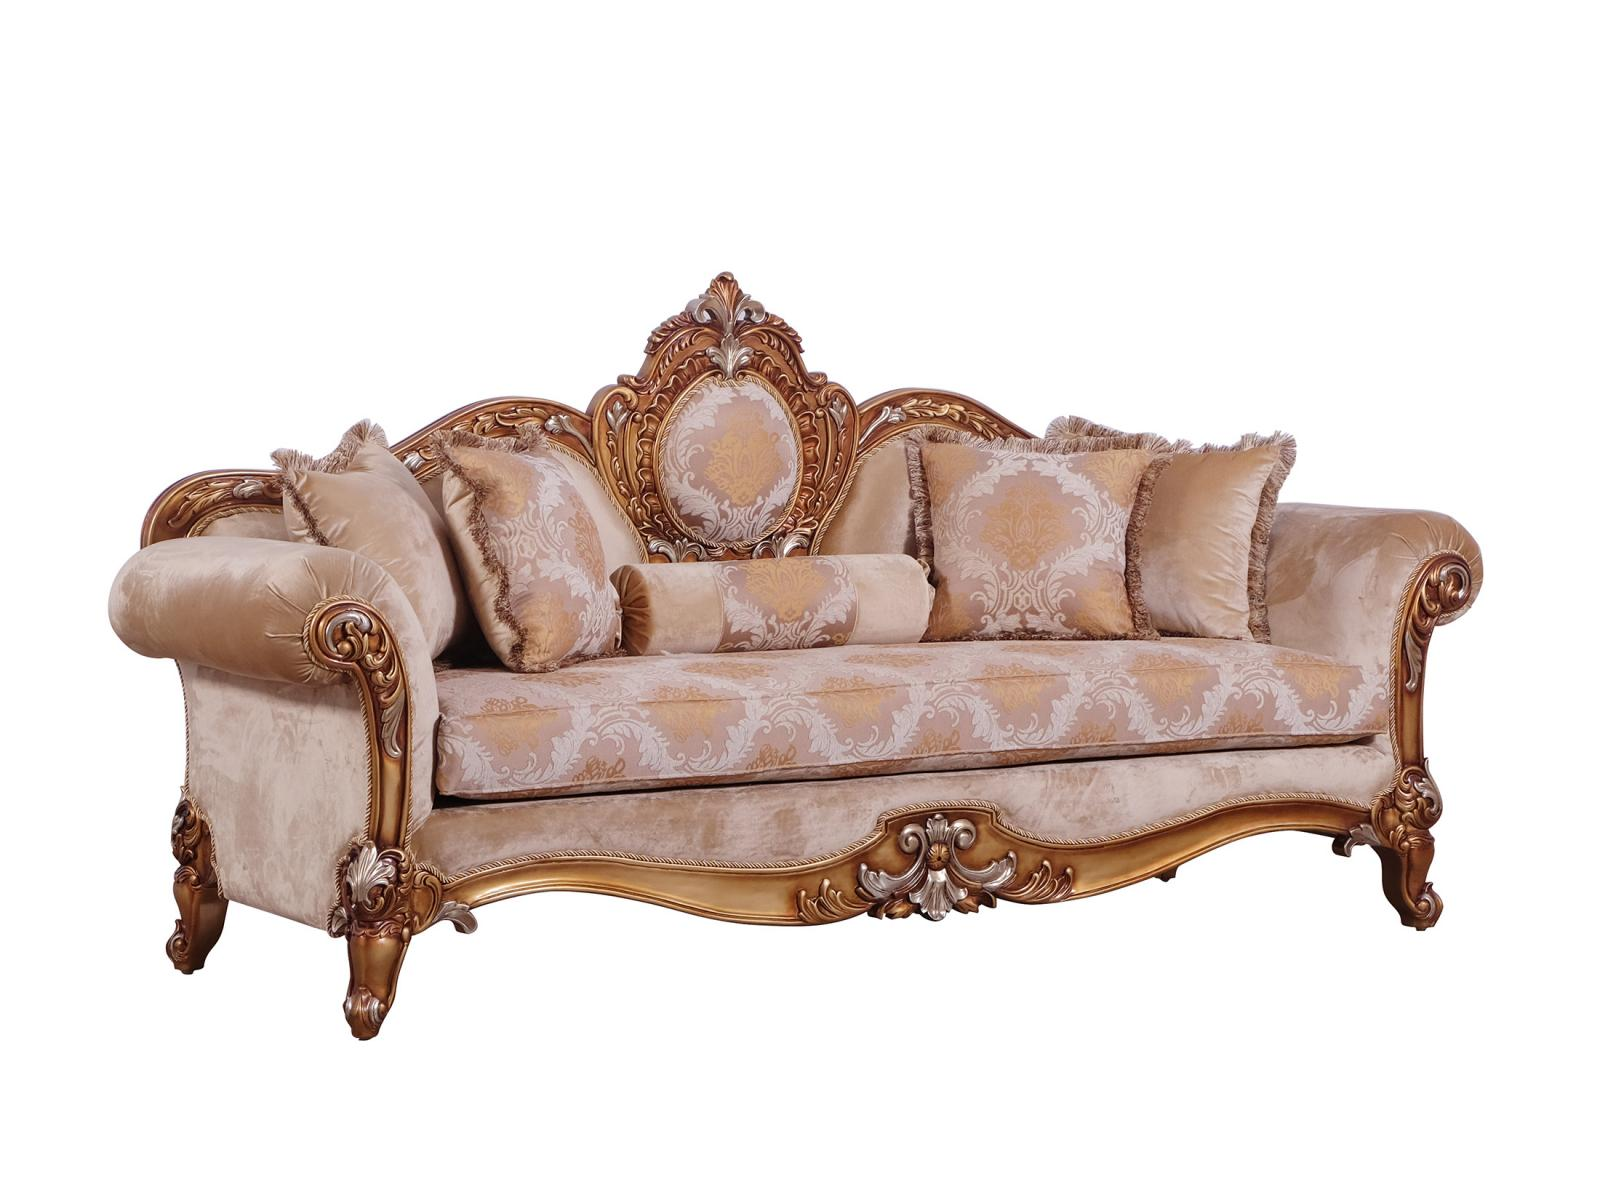 Classic  Traditional Brown  Gold  Silver Wood  Solid Hardwood and Fabric Sofa EUROPEAN FURNITURE 41026-S